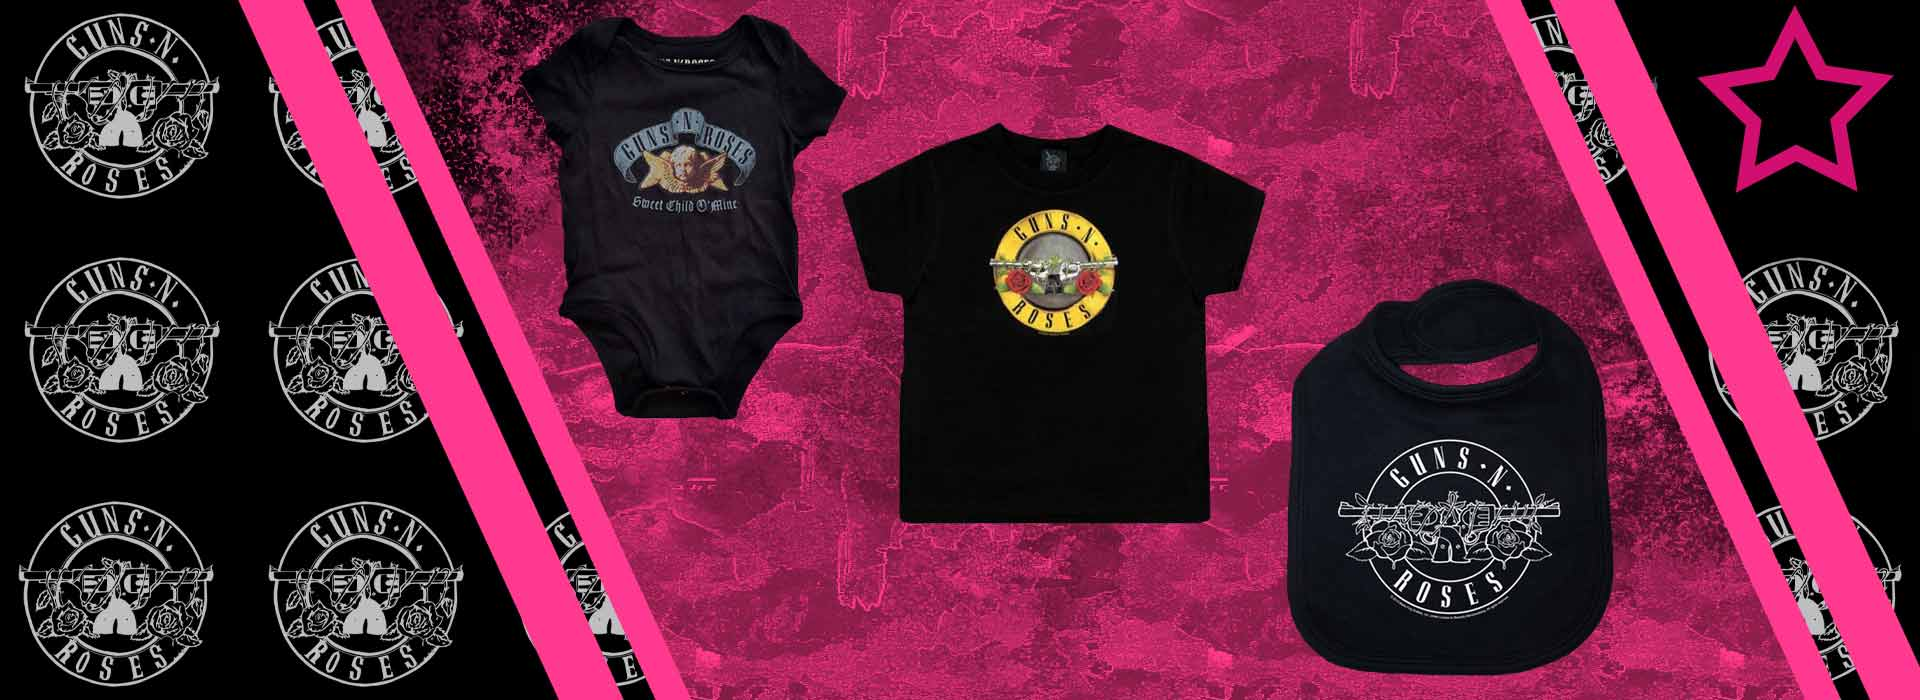 Rockin' kids and baby clothes